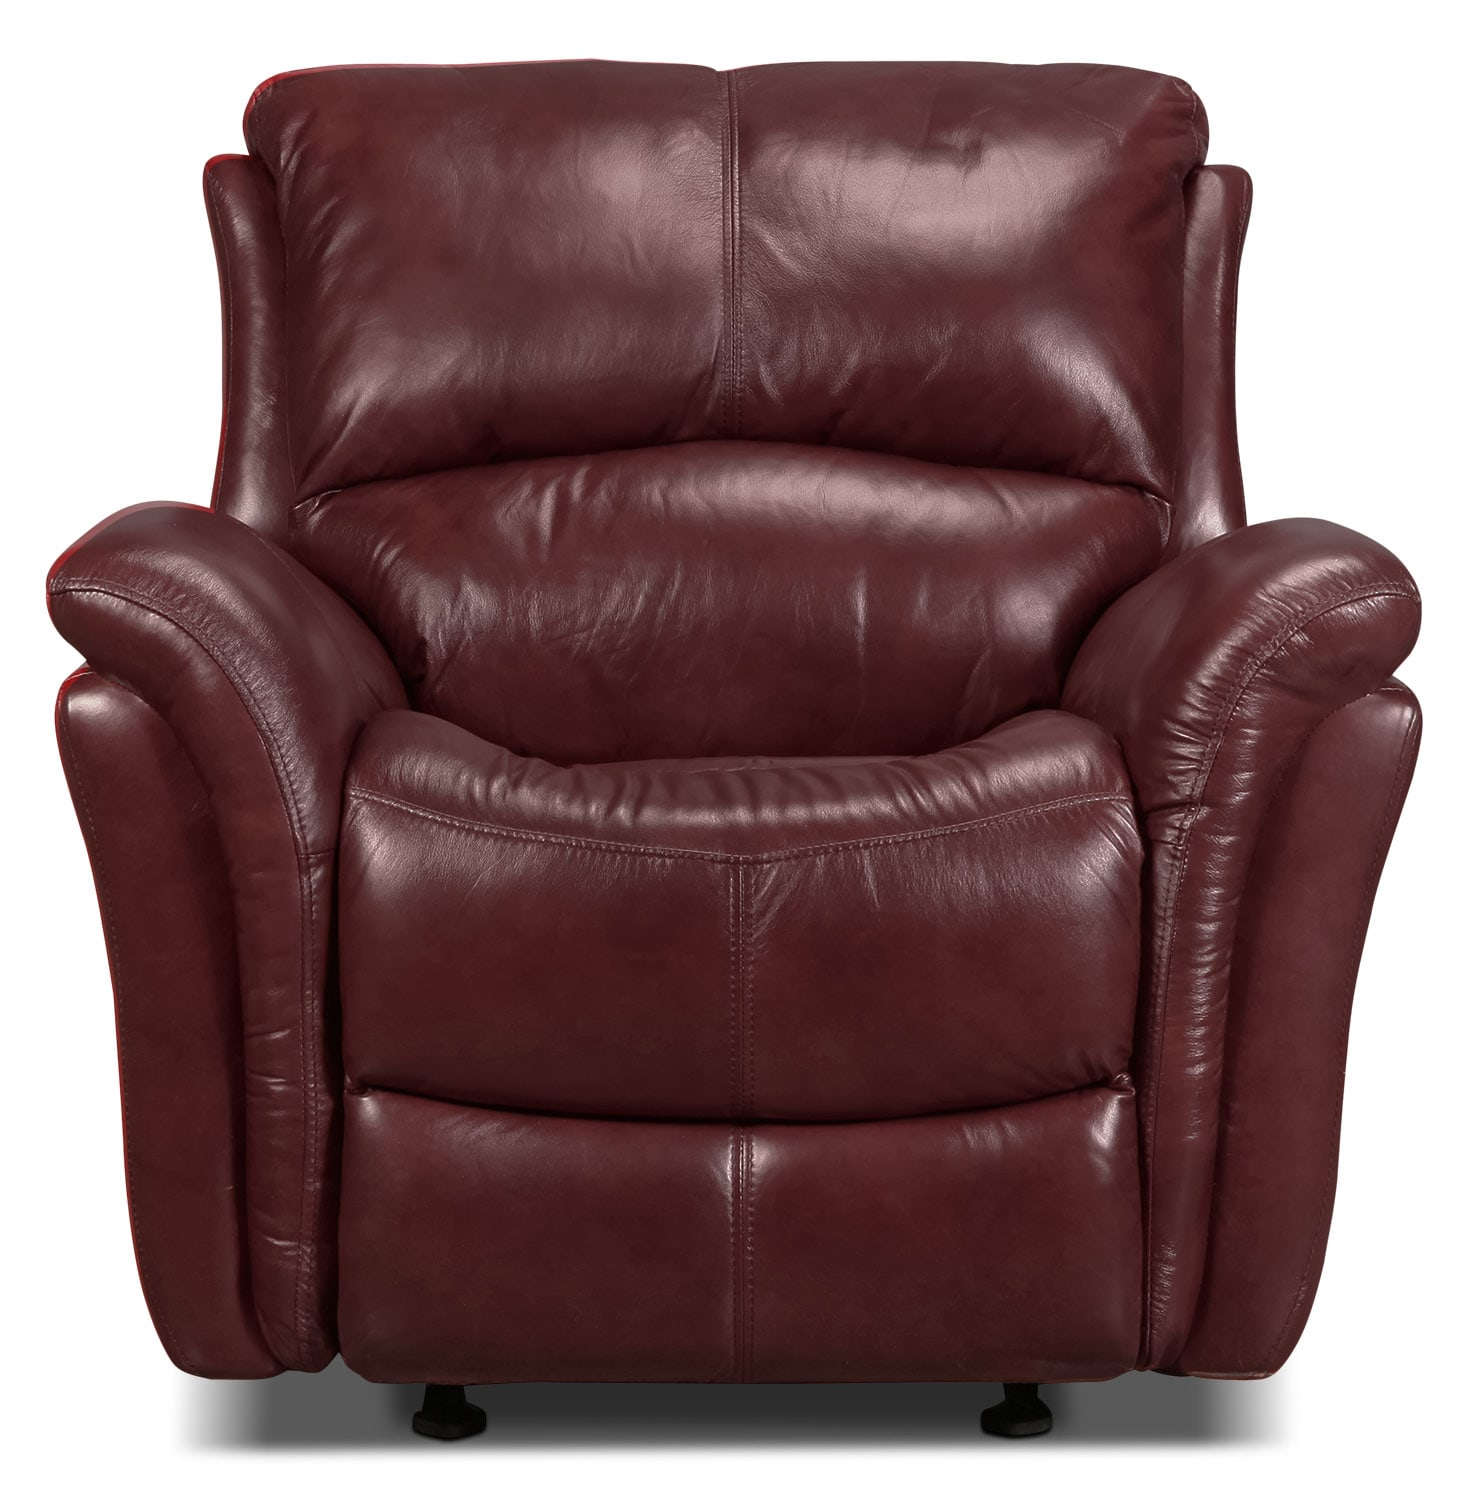 Living Room Furniture - Griffin Power Recliner - Red